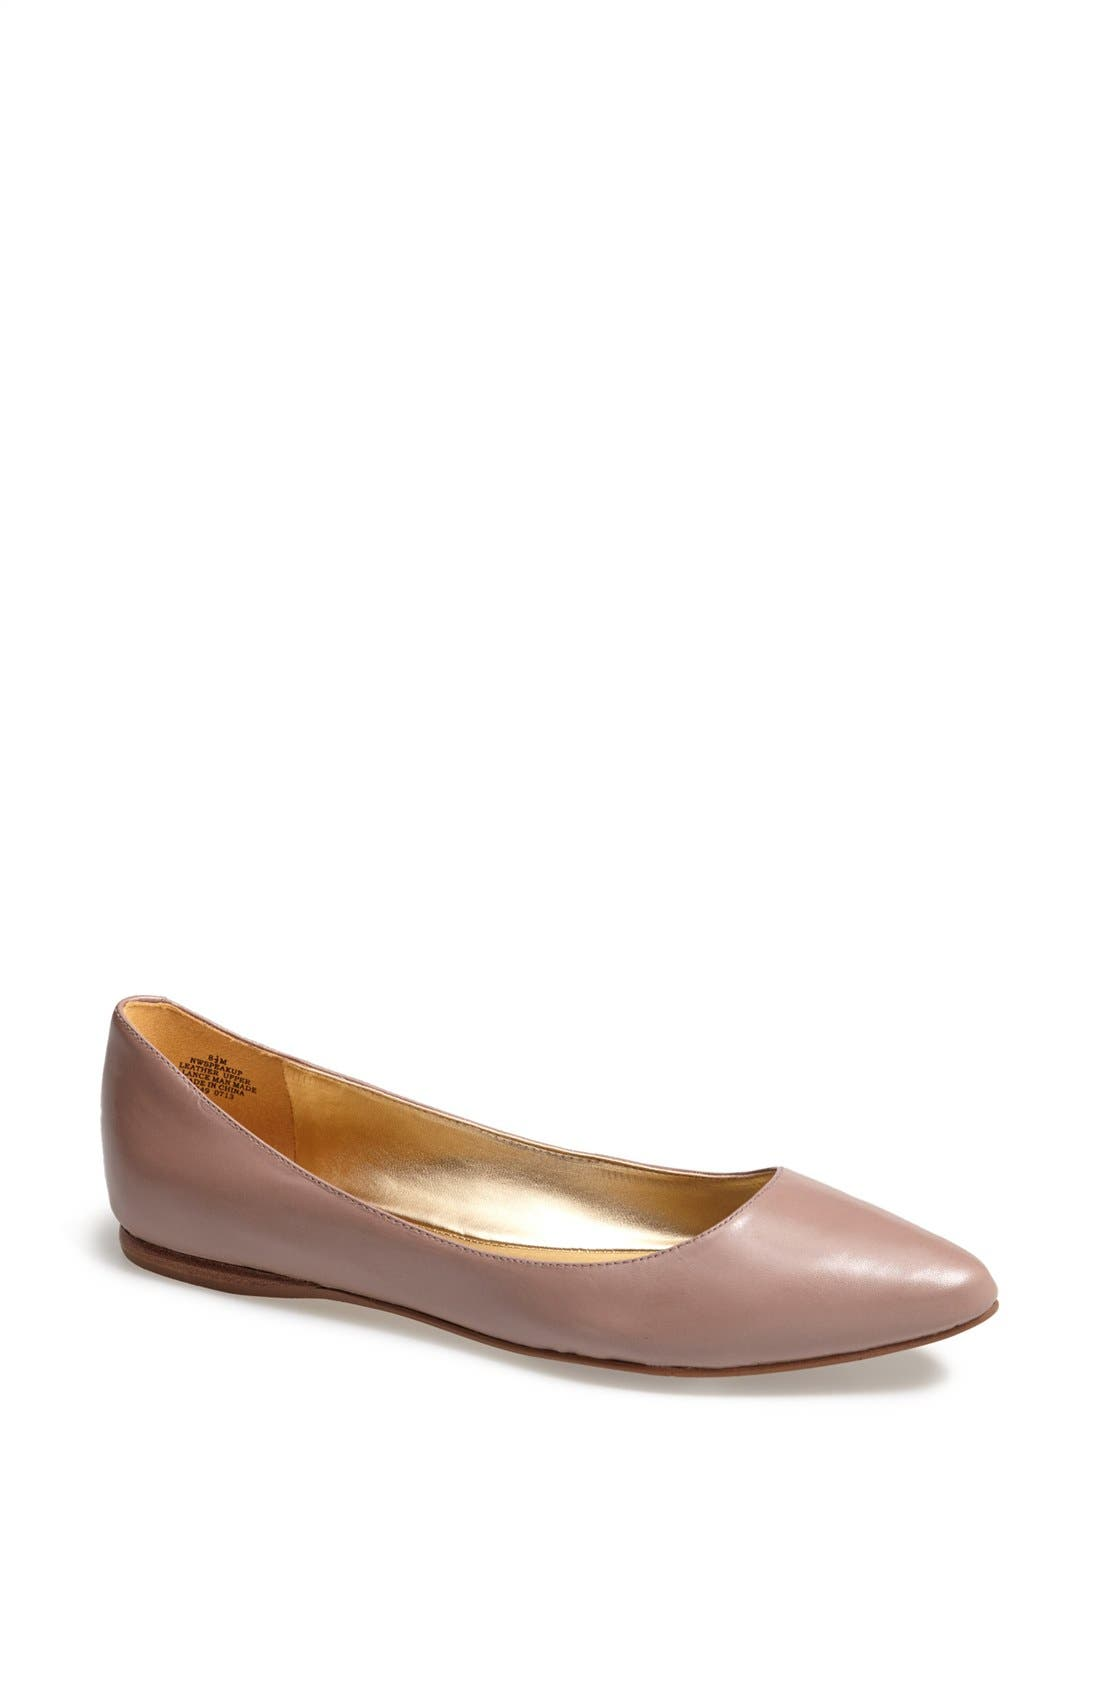 Alternate Image 1 Selected - Nine West 'Speakup' Flat